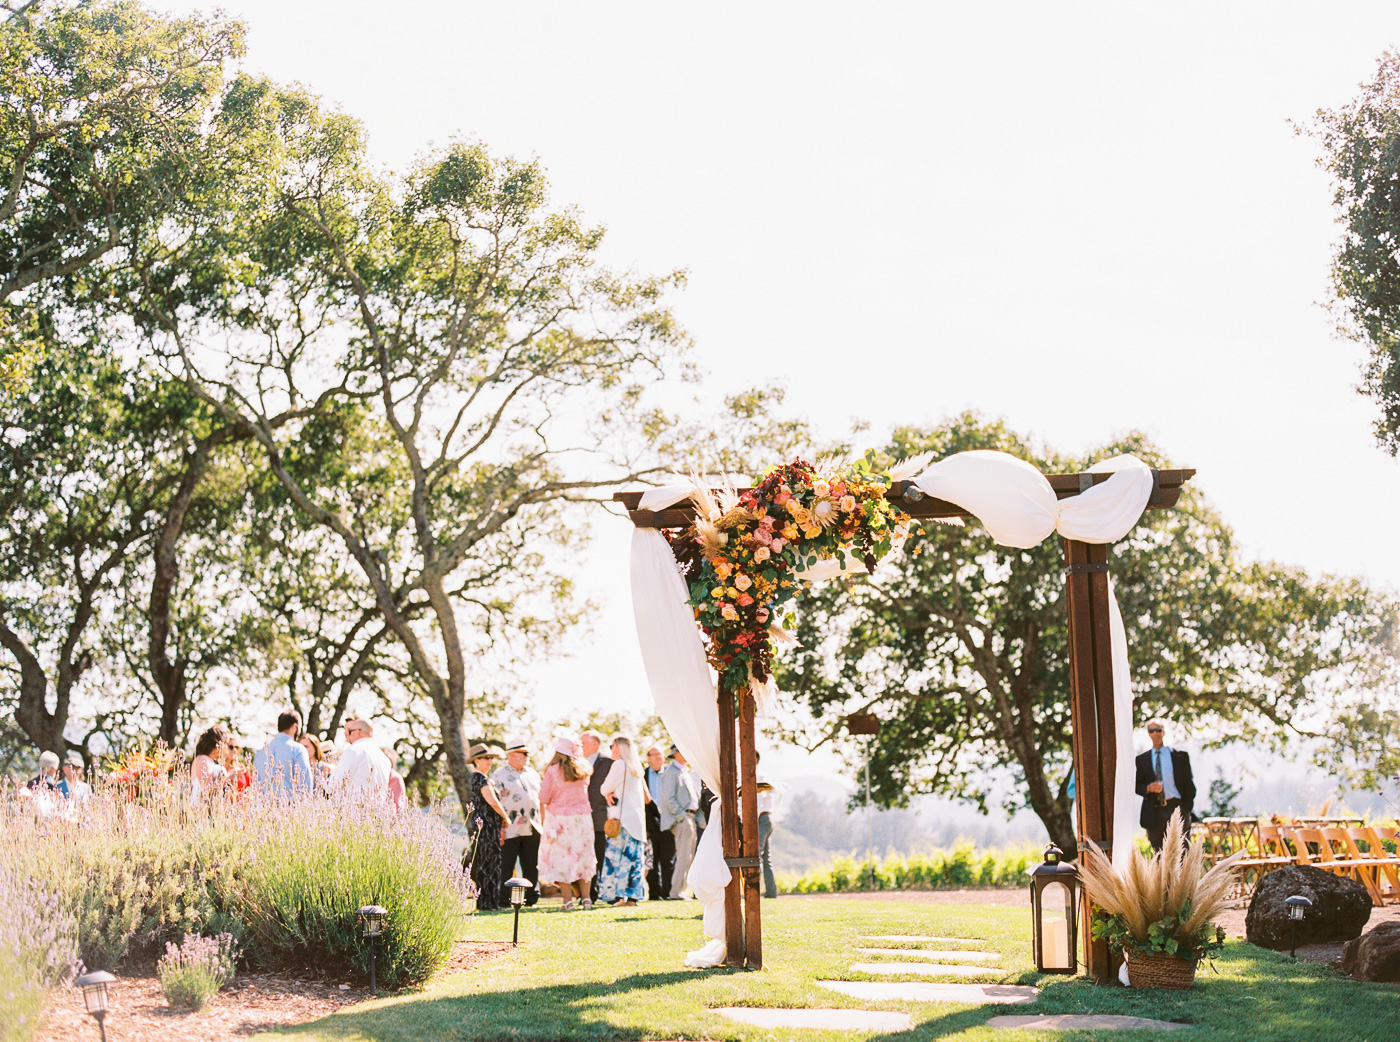 Kunde winery wedding-85.jpg